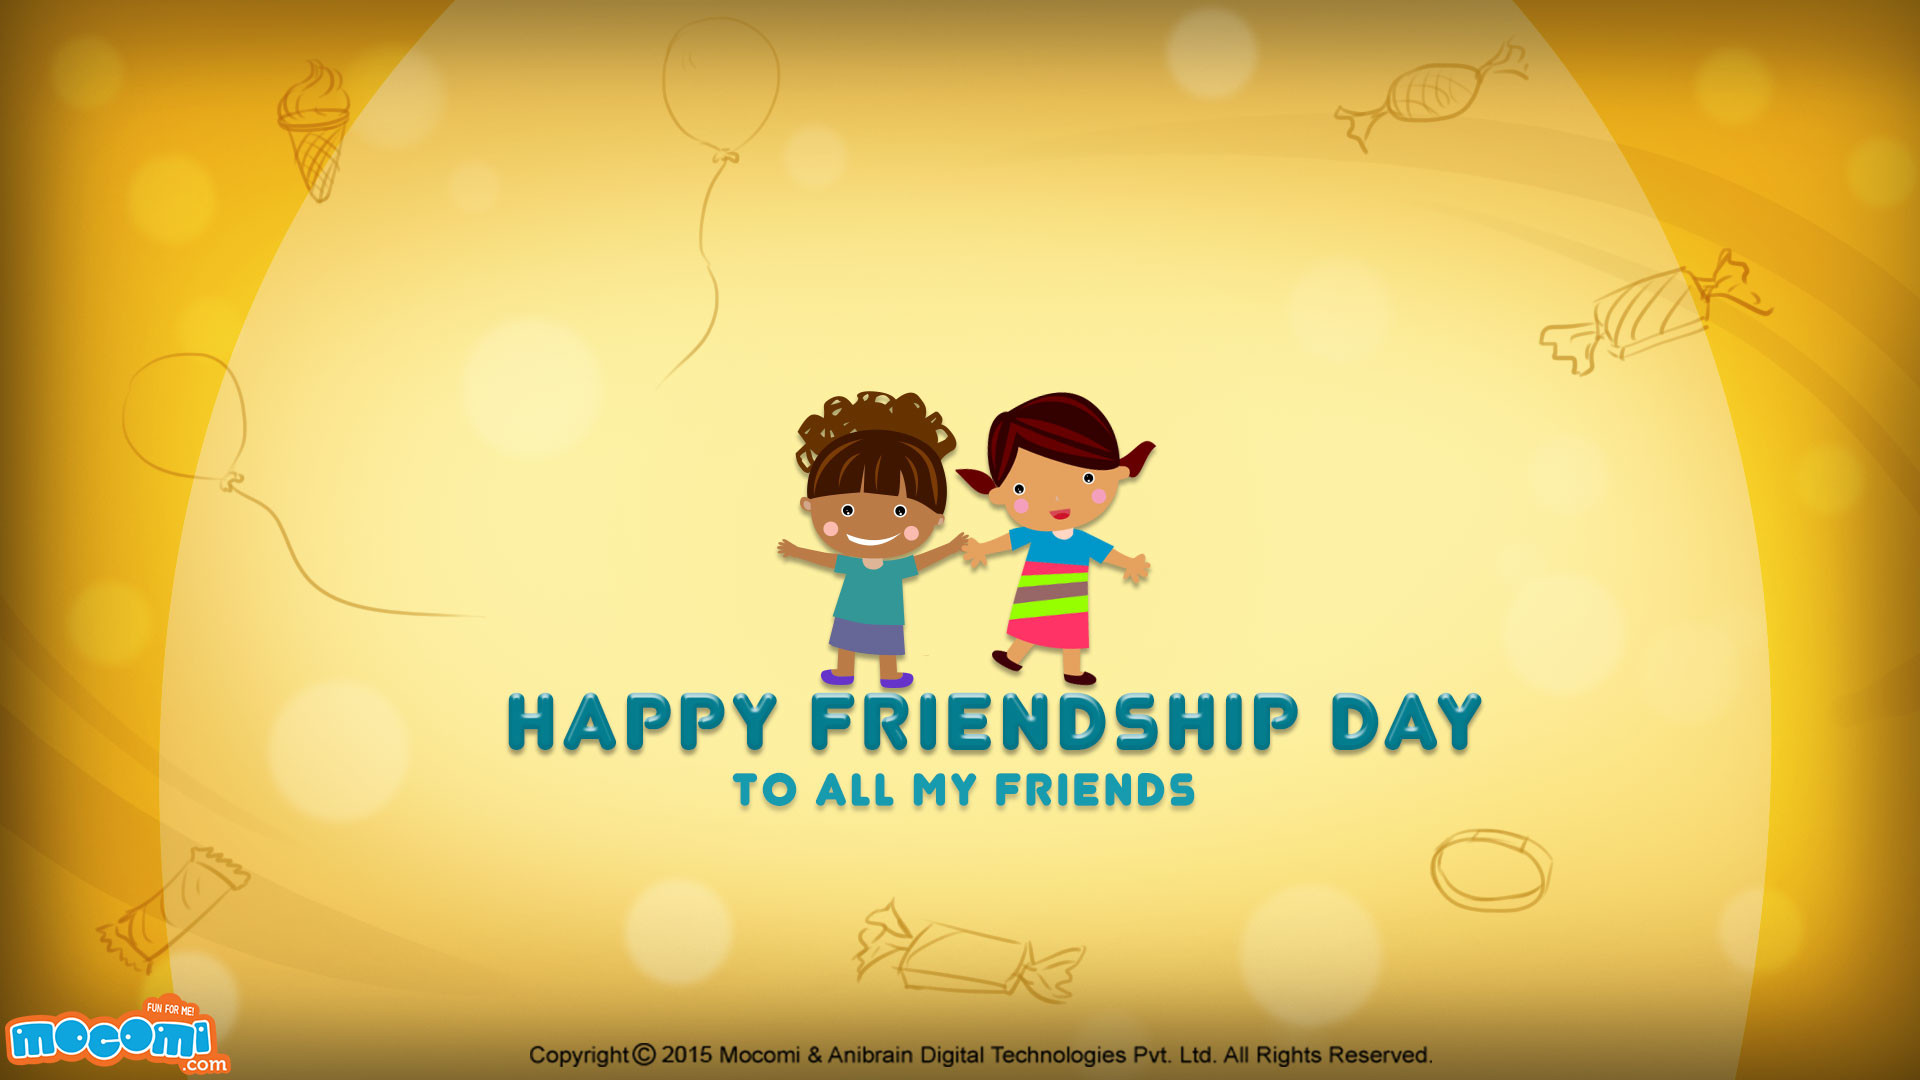 Friendship wallpaper 84 images 2560x1440 chain of love and friendship wallpaper altavistaventures Image collections